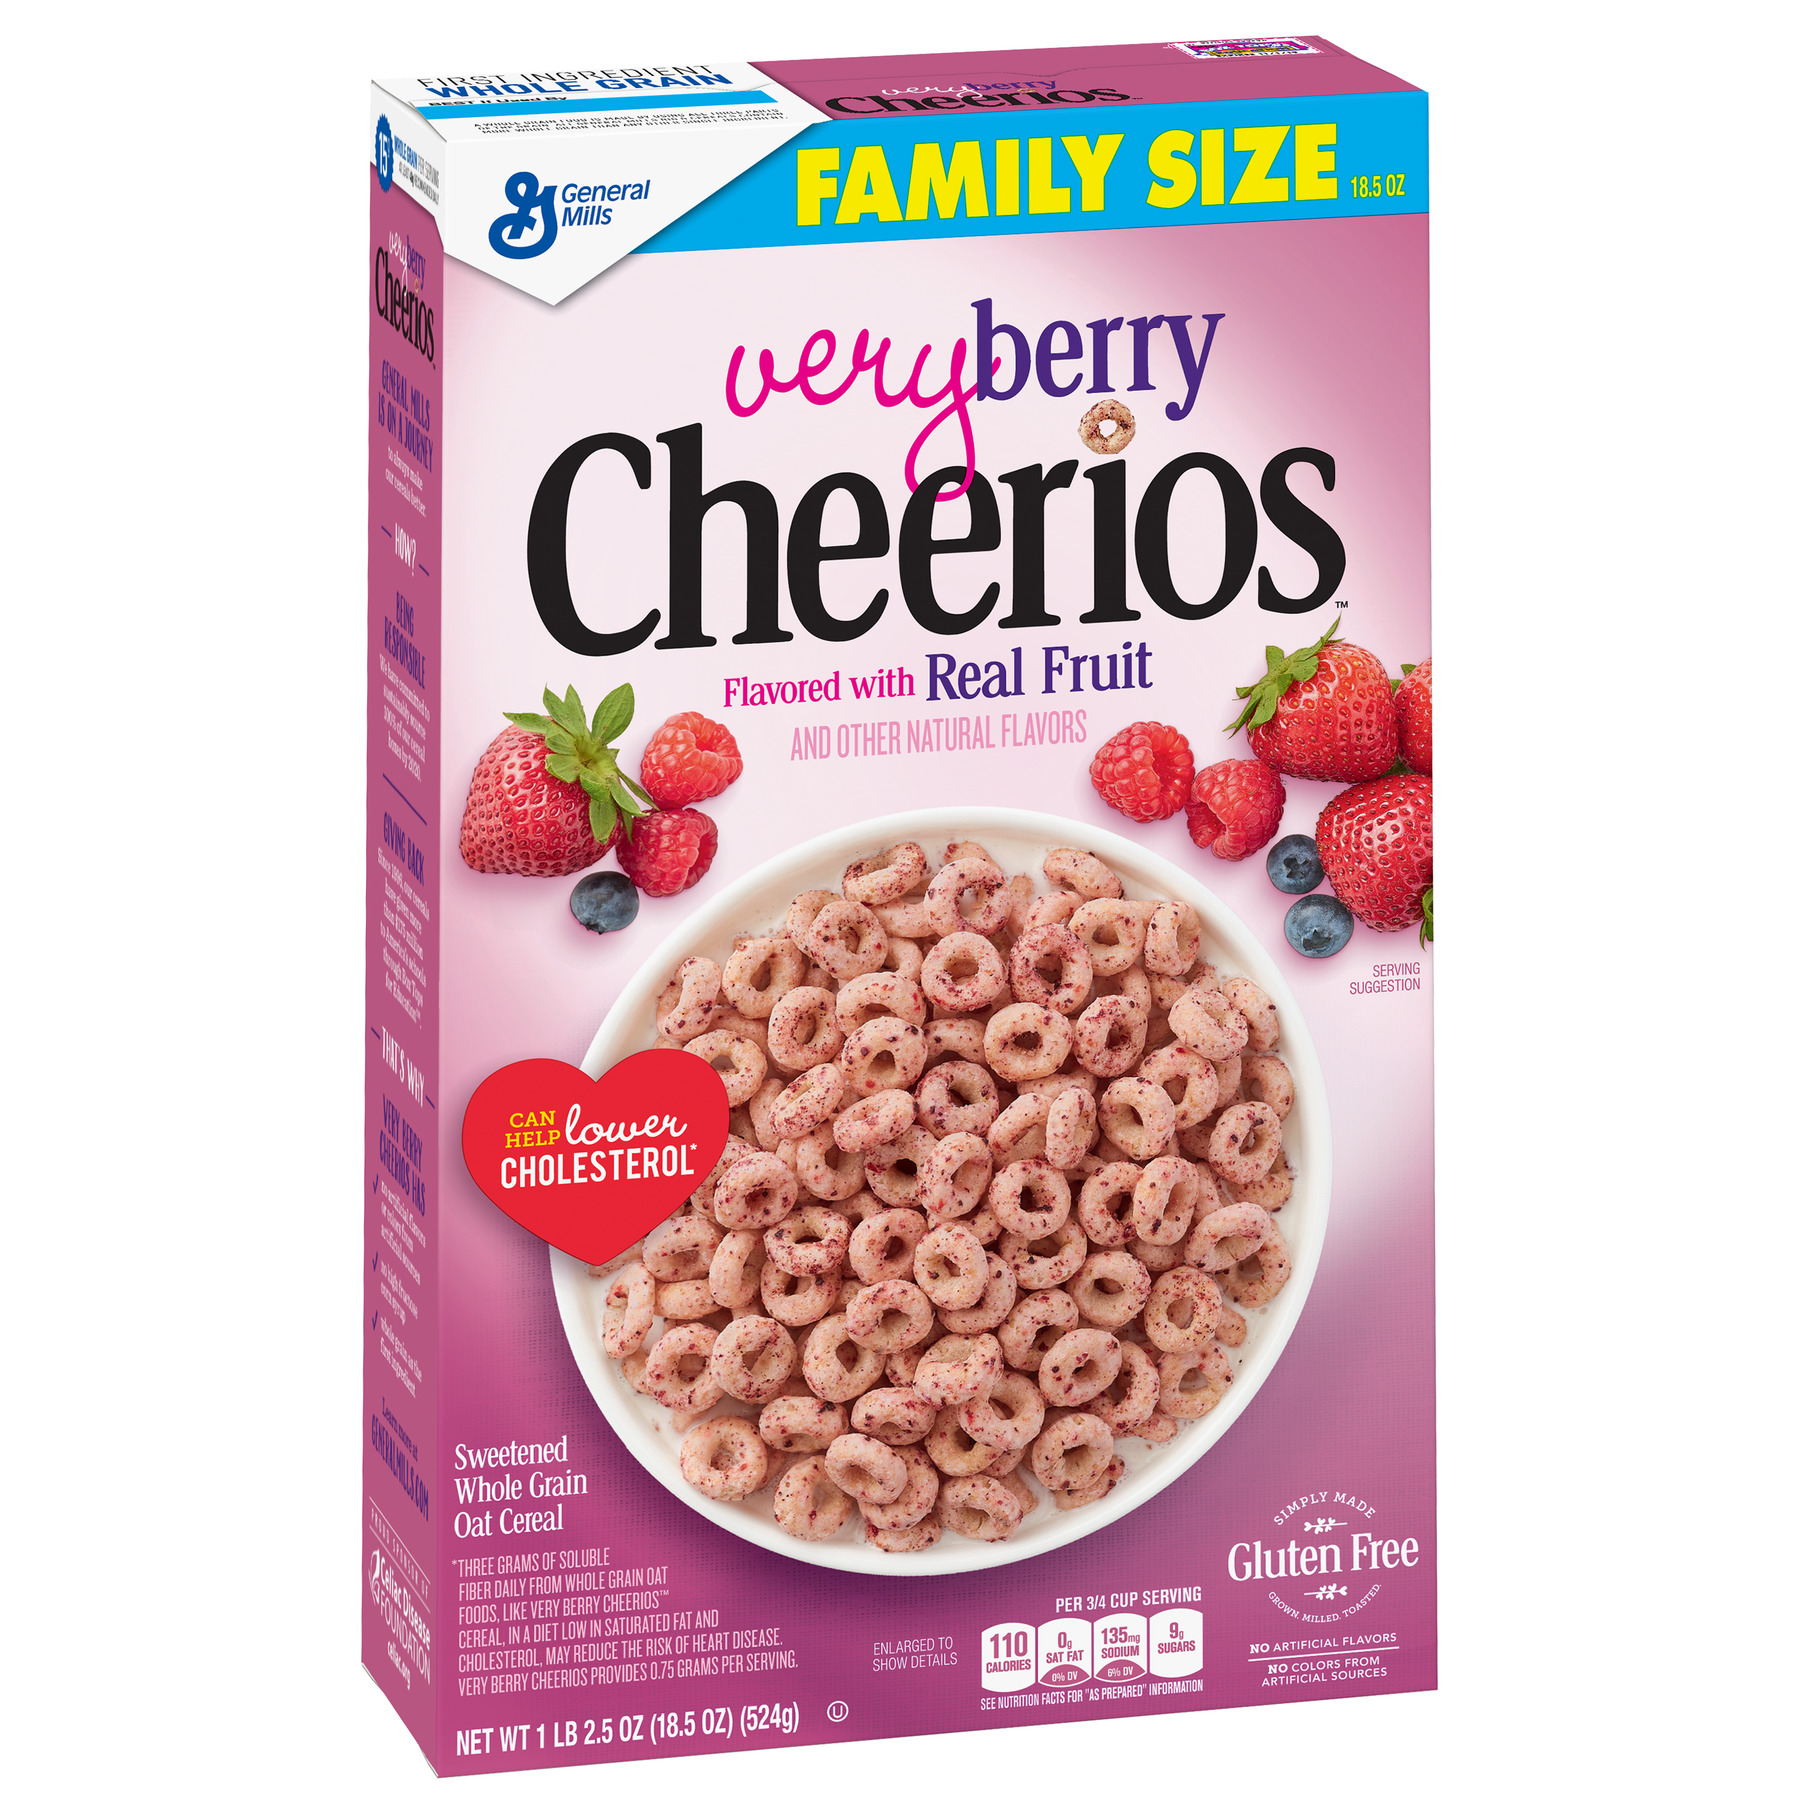 Very Berry Cheerios Gluten Free Cereal, 18.5 oz Box